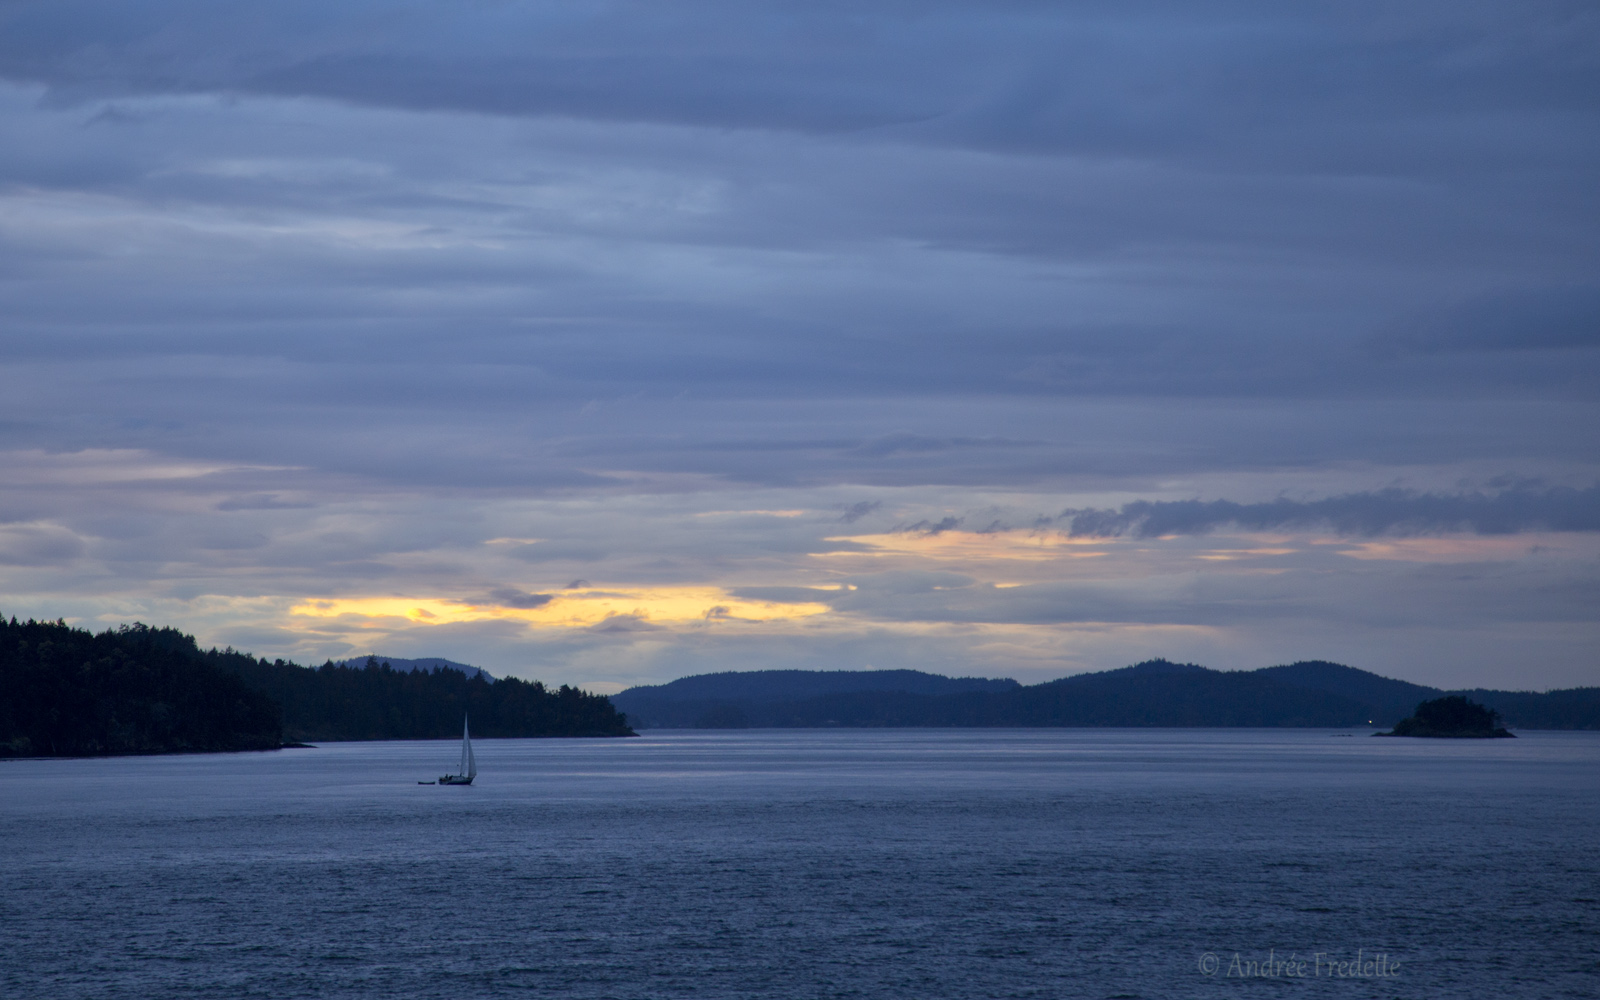 Evening sail, by Salt Spring Island, British Columbia. Photo by Andrée Fredette